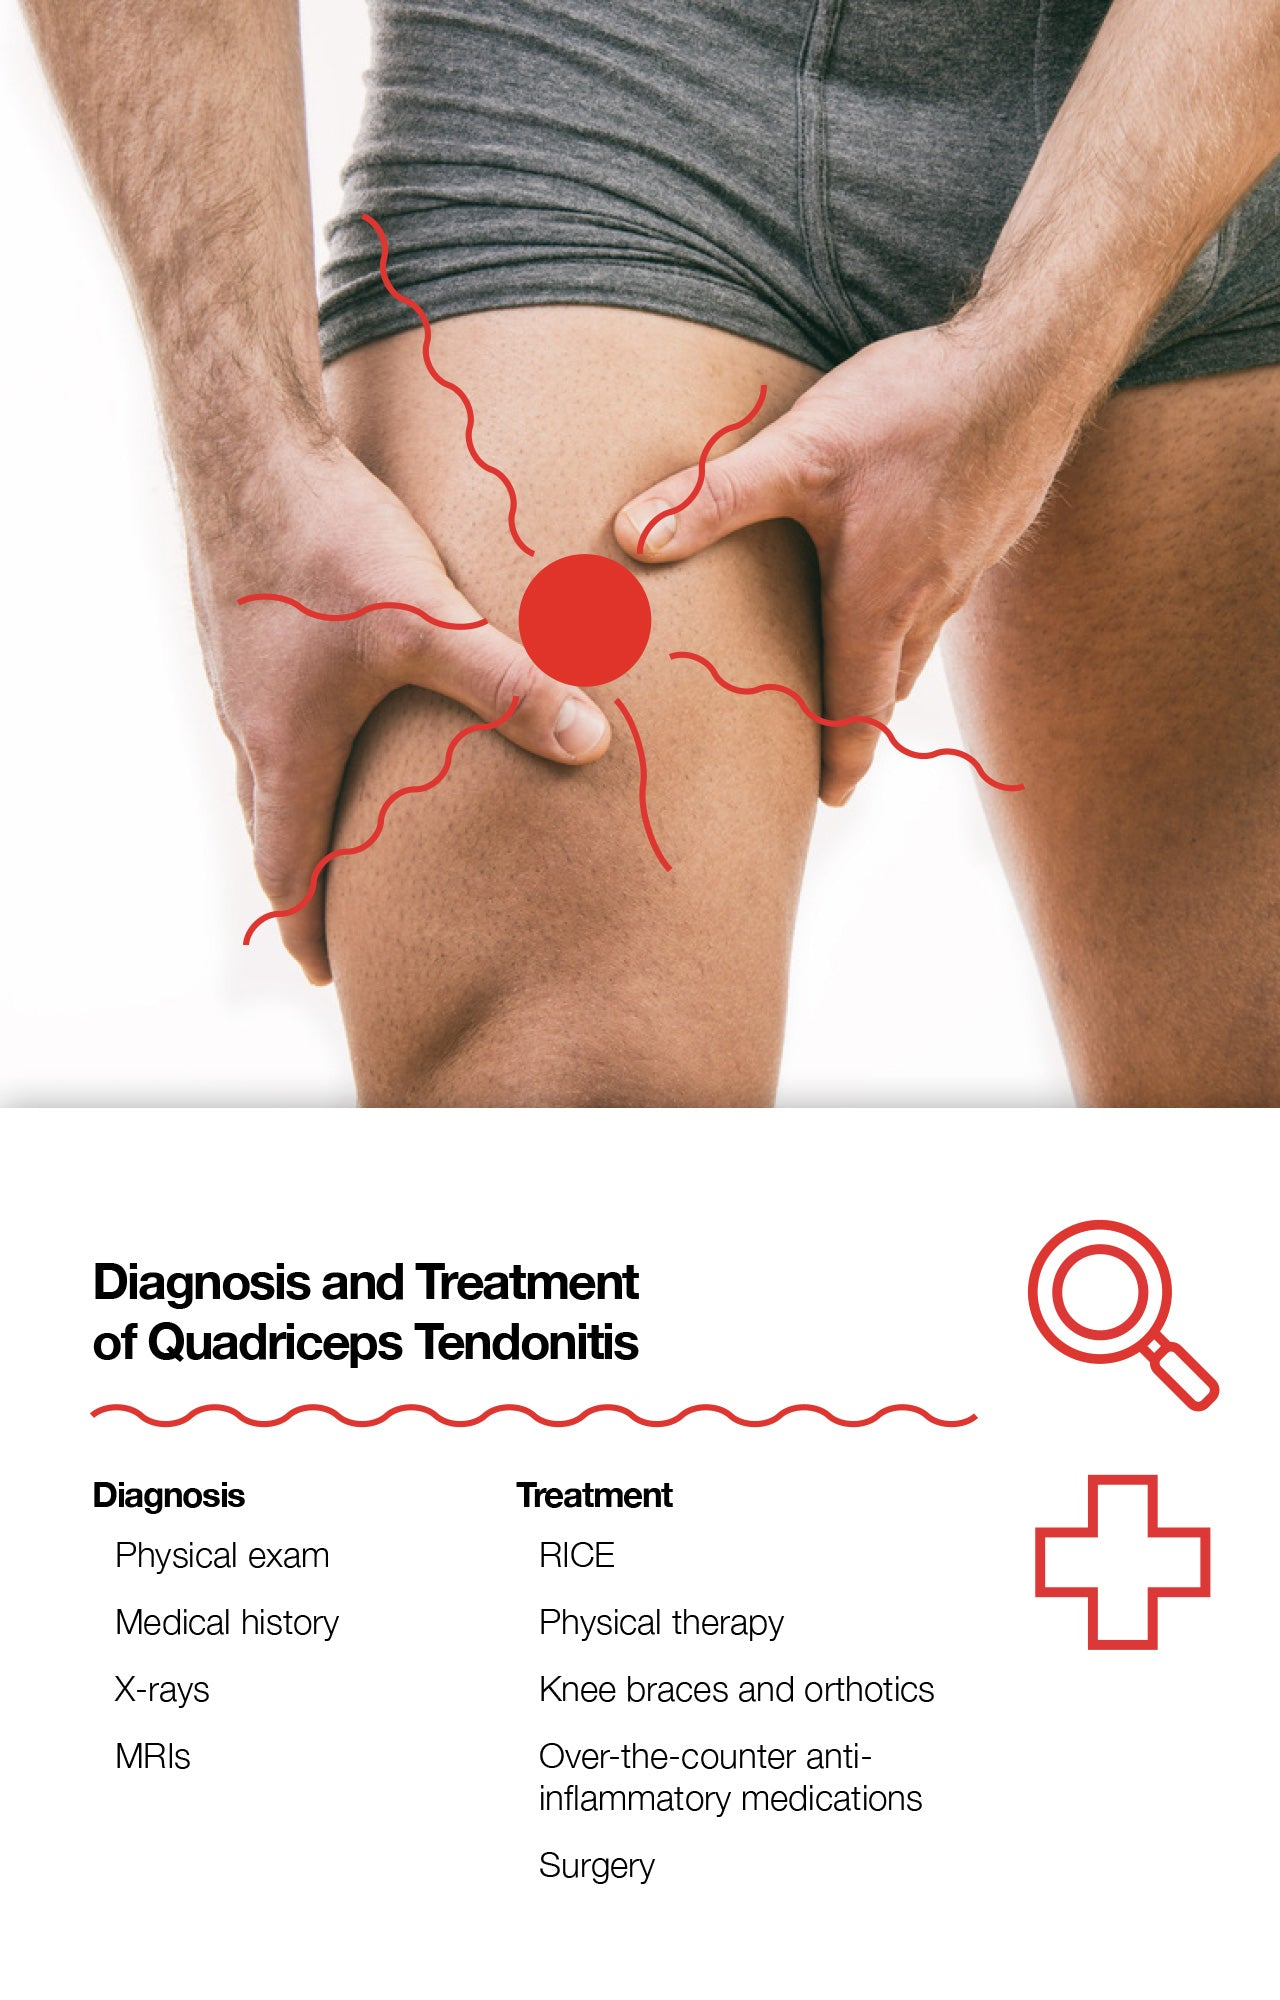 Diagnosis and Treatment of Quadriceps Tendonitis